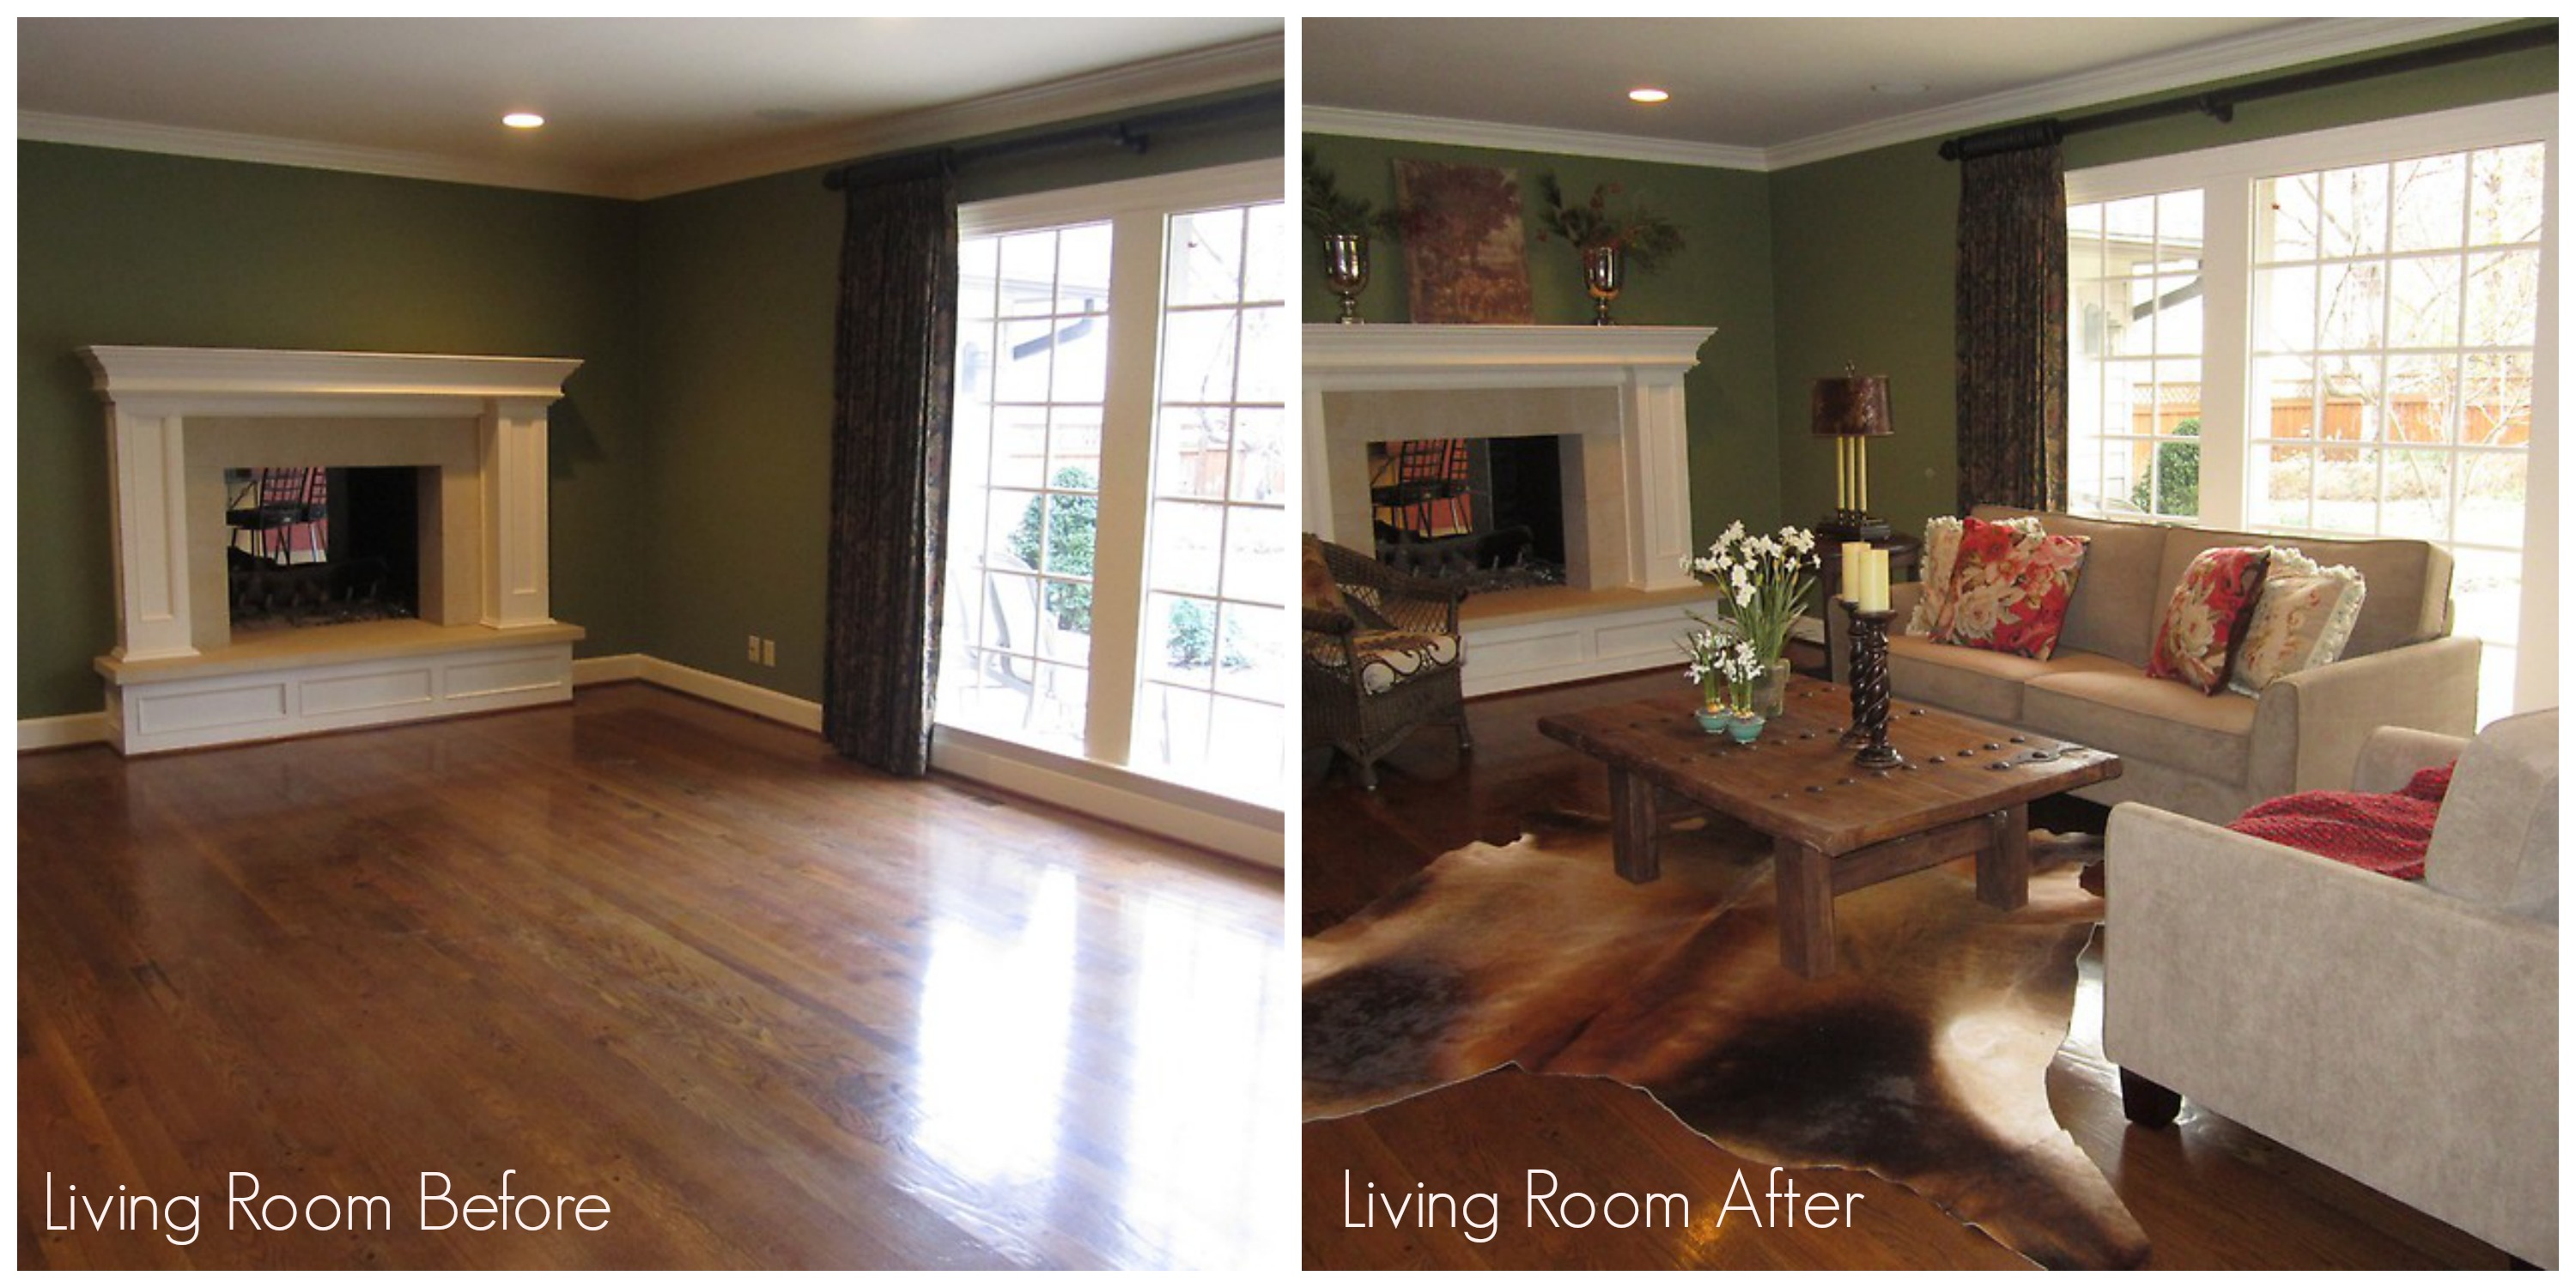 living room before and after staging - Home Staged Designs